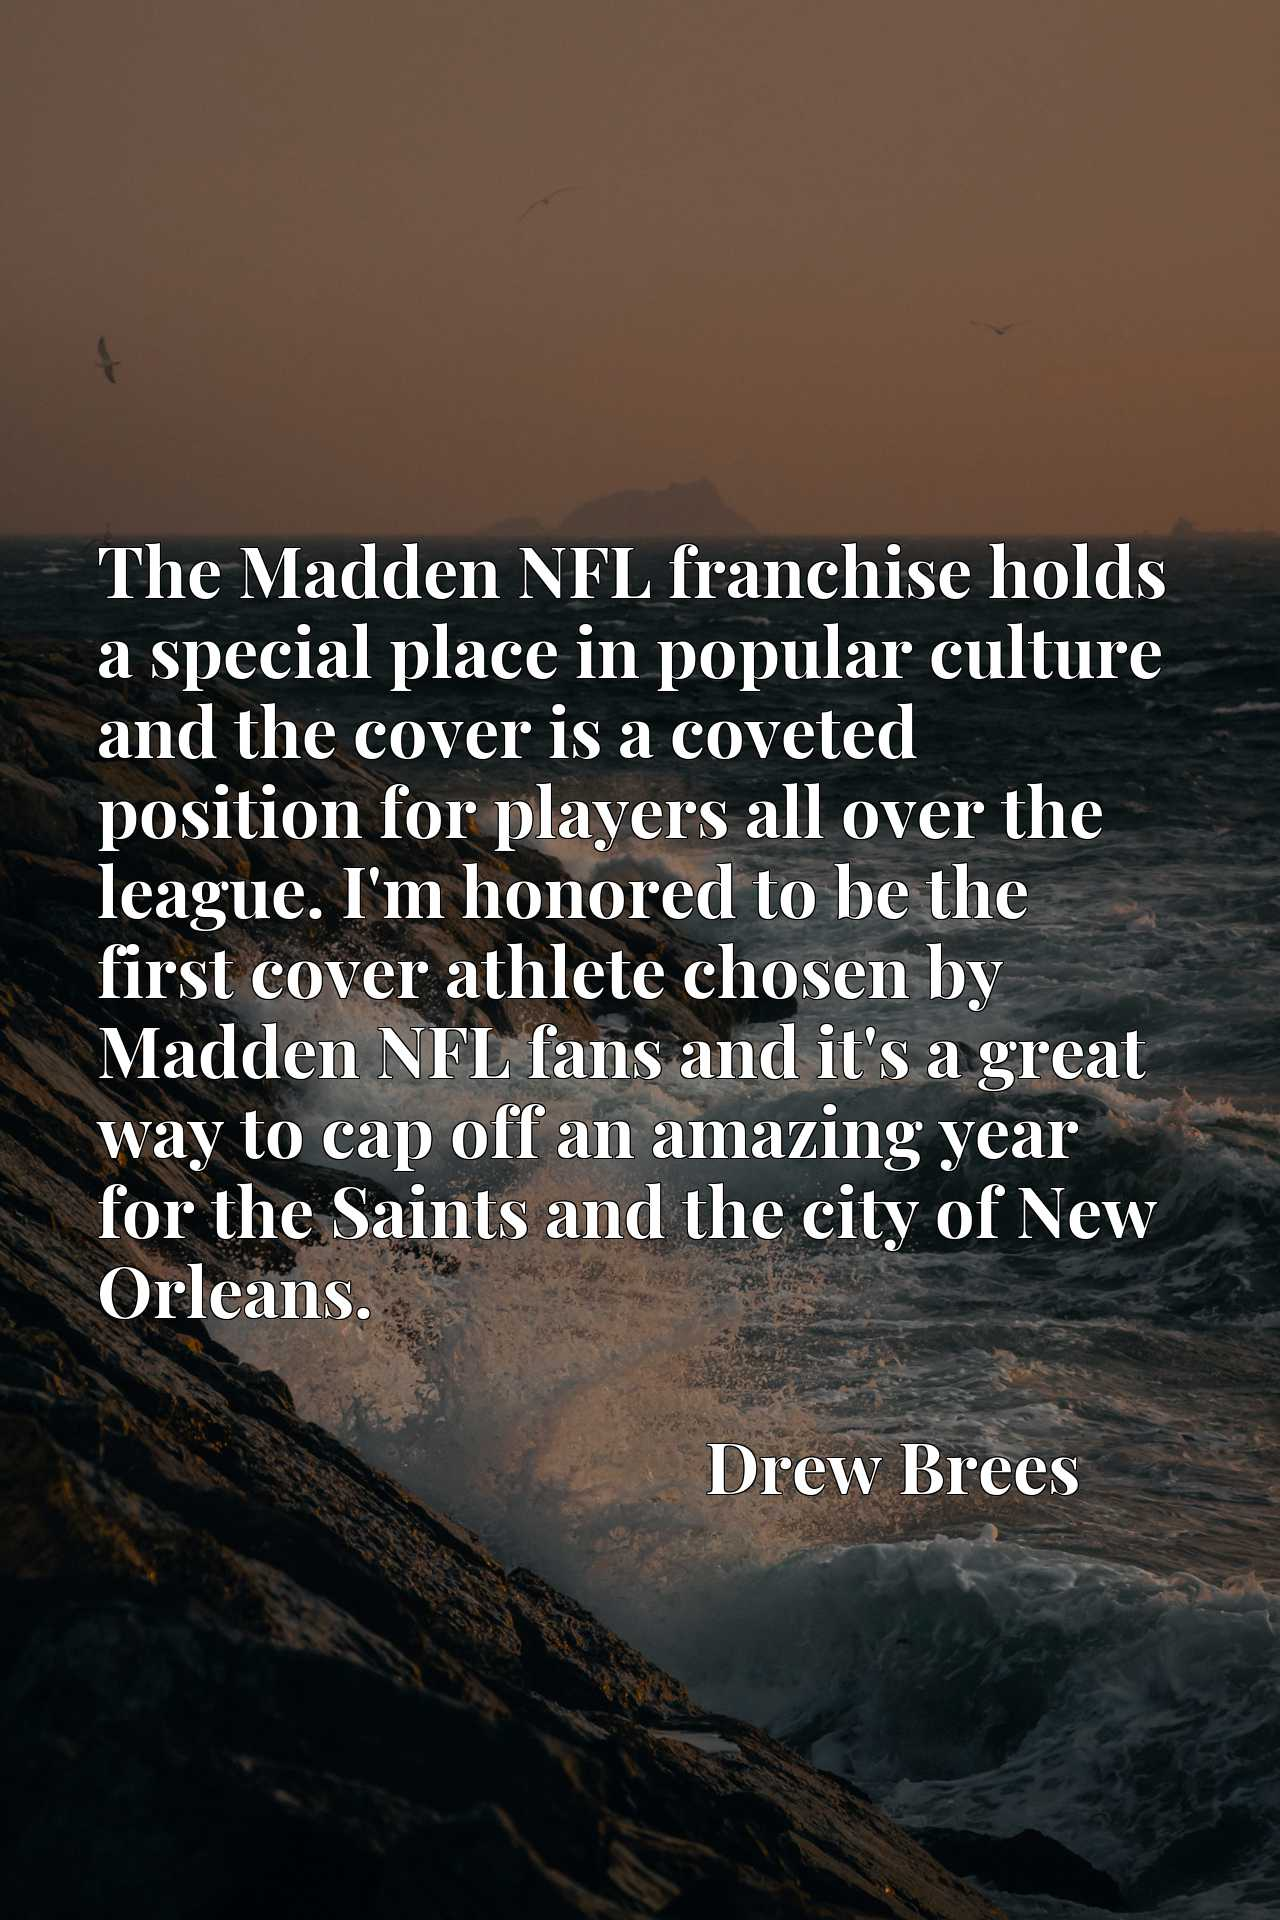 The Madden NFL franchise holds a special place in popular culture and the cover is a coveted position for players all over the league. I'm honored to be the first cover athlete chosen by Madden NFL fans and it's a great way to cap off an amazing year for the Saints and the city of New Orleans.